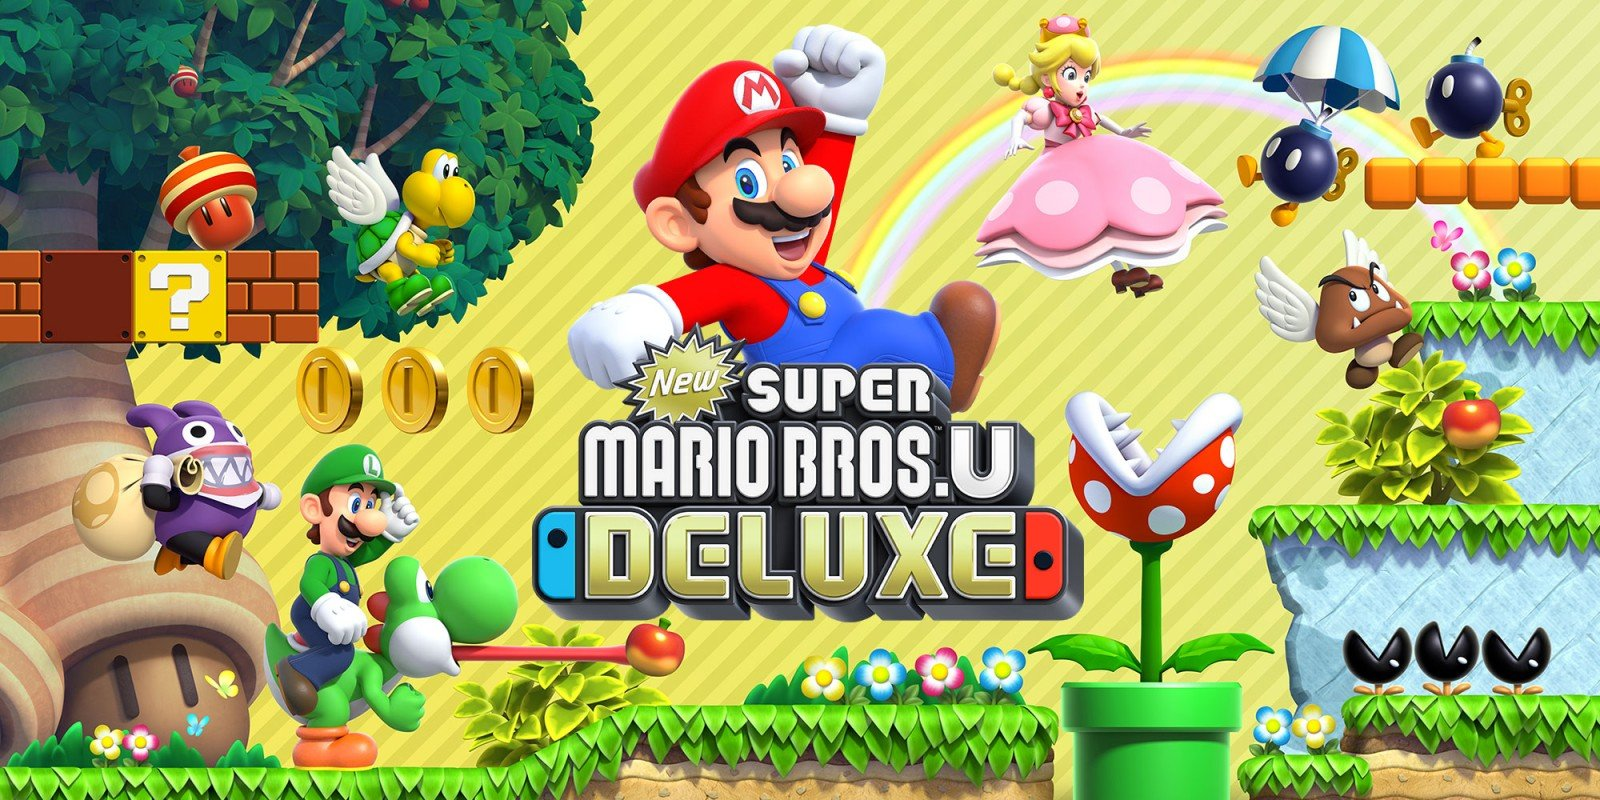 New Nintendo Switch Games 2020.New Super Mario Bros U Deluxe Approval Sets The Stage For